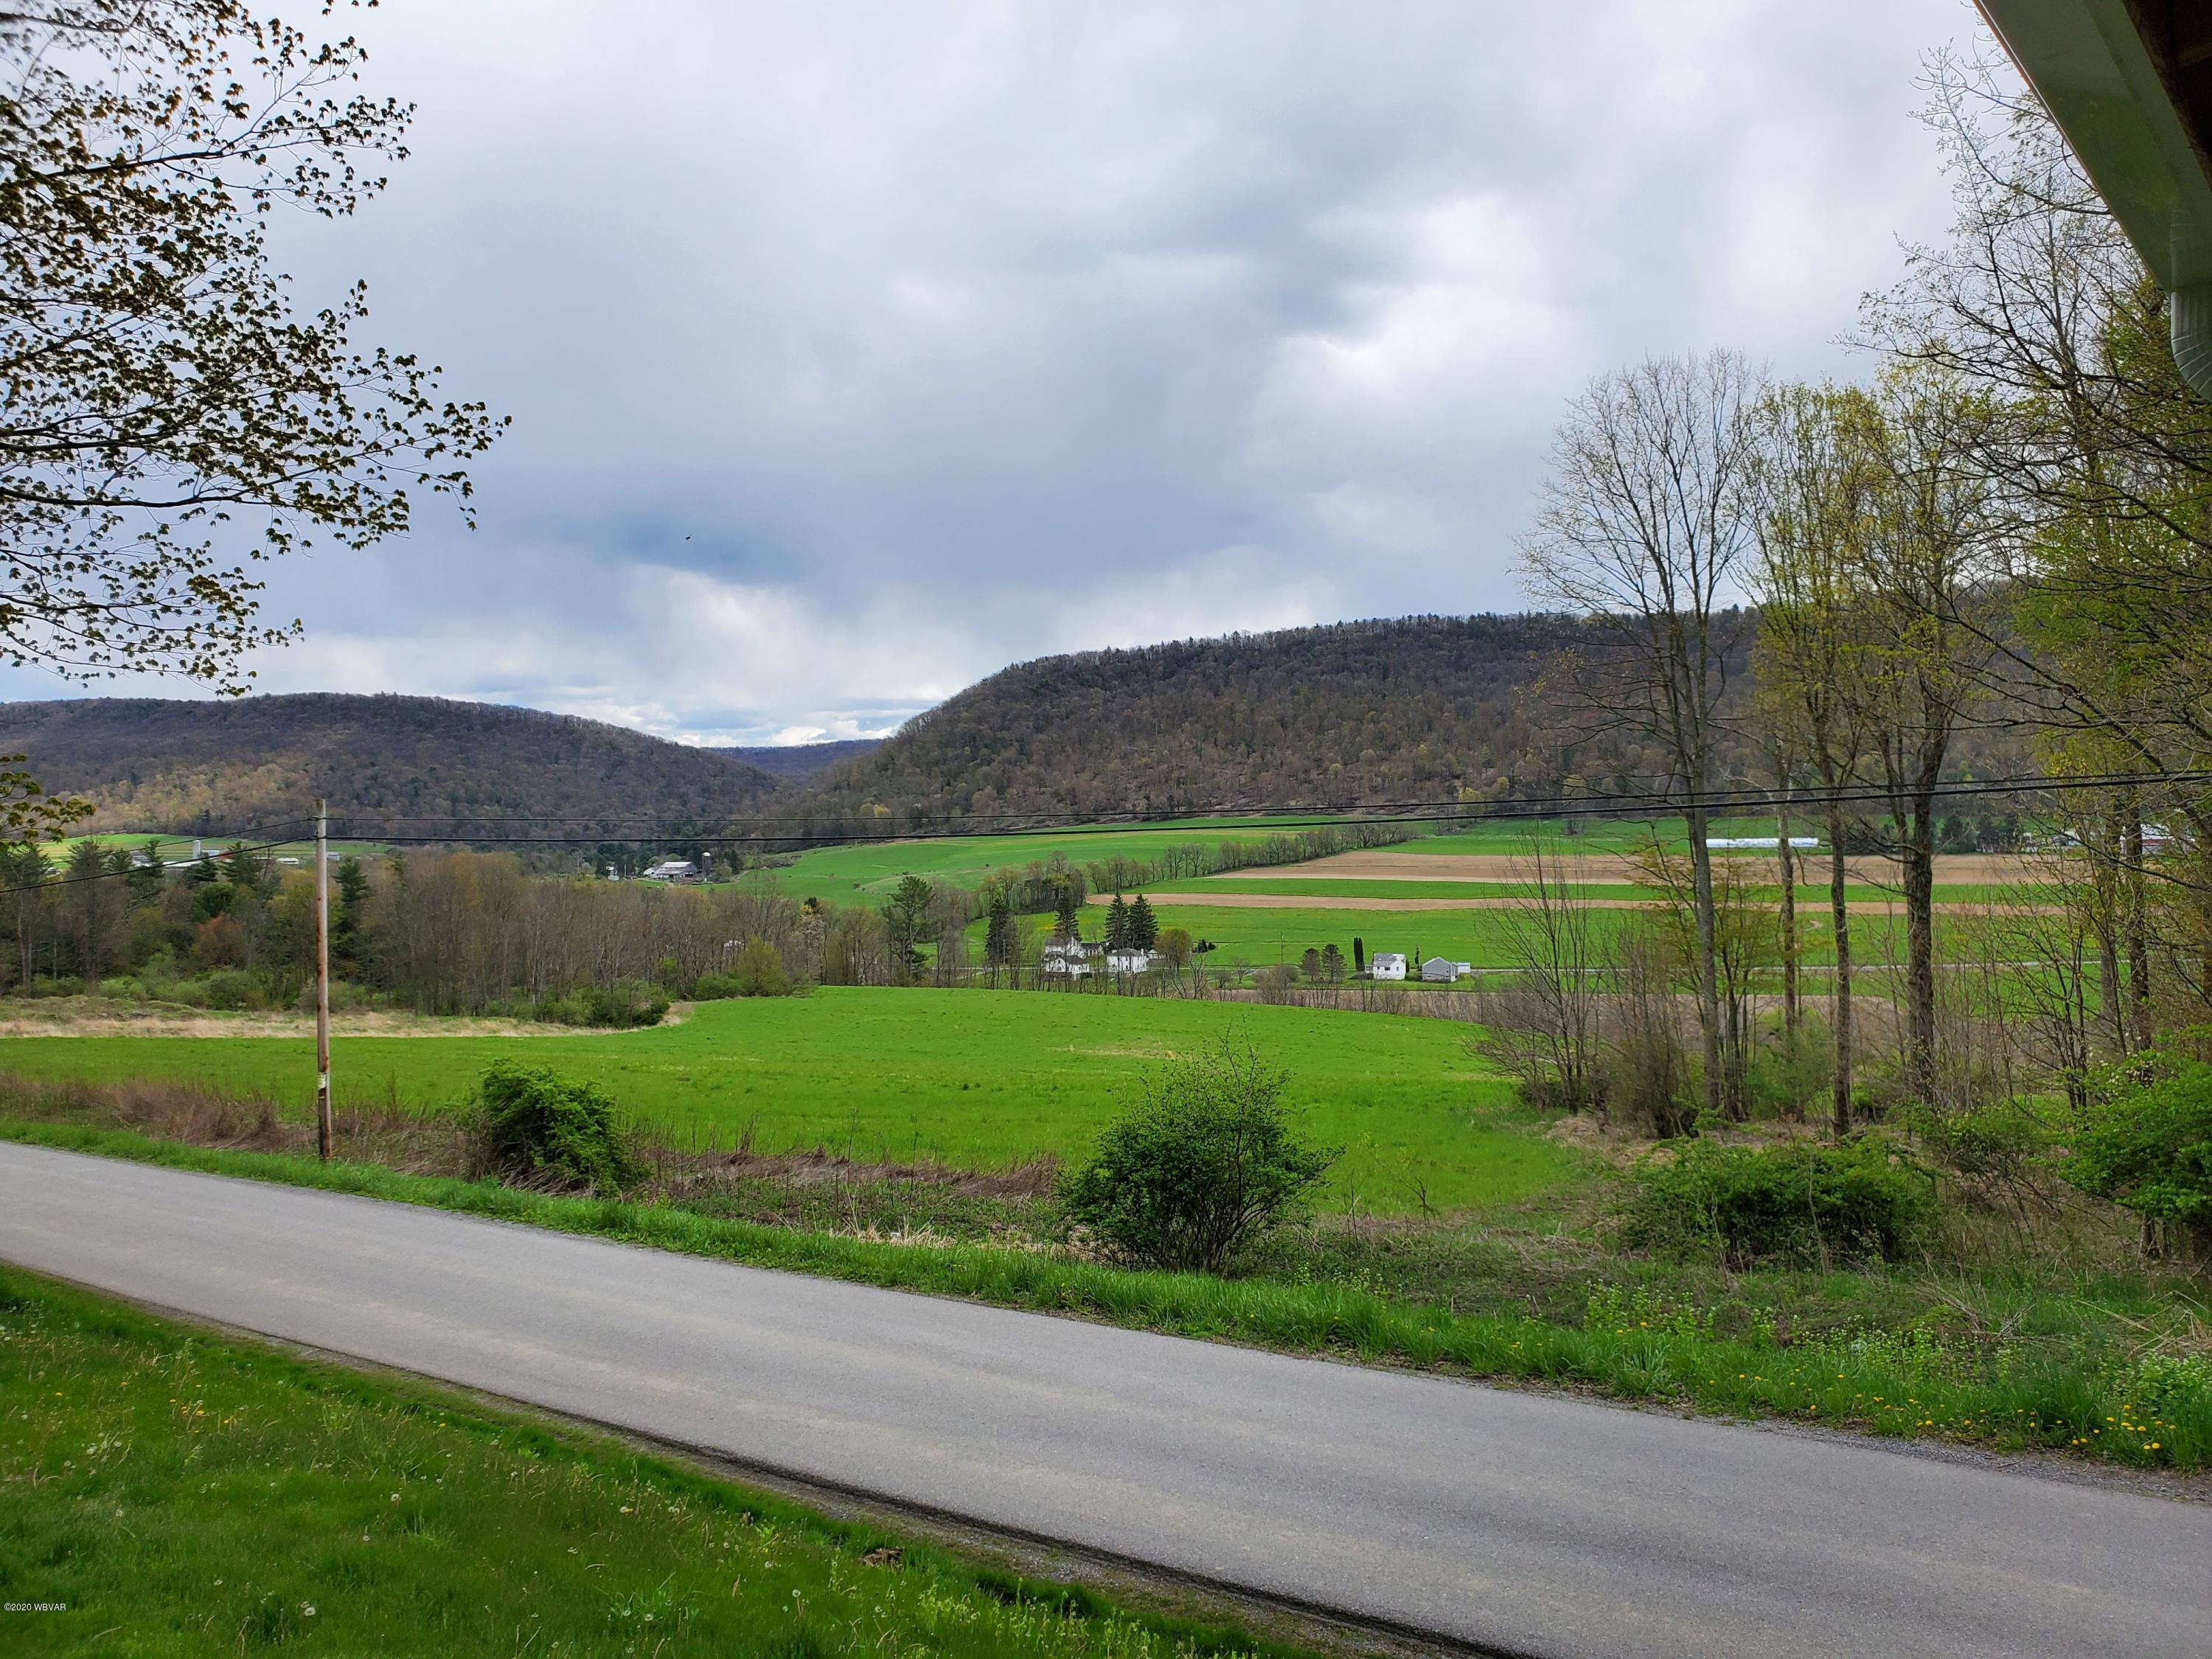 659 SUMMER MOUNTAIN ROAD, Loganton, PA 17747, 3 Bedrooms Bedrooms, ,1 BathroomBathrooms,Residential,For sale,SUMMER MOUNTAIN,WB-90120